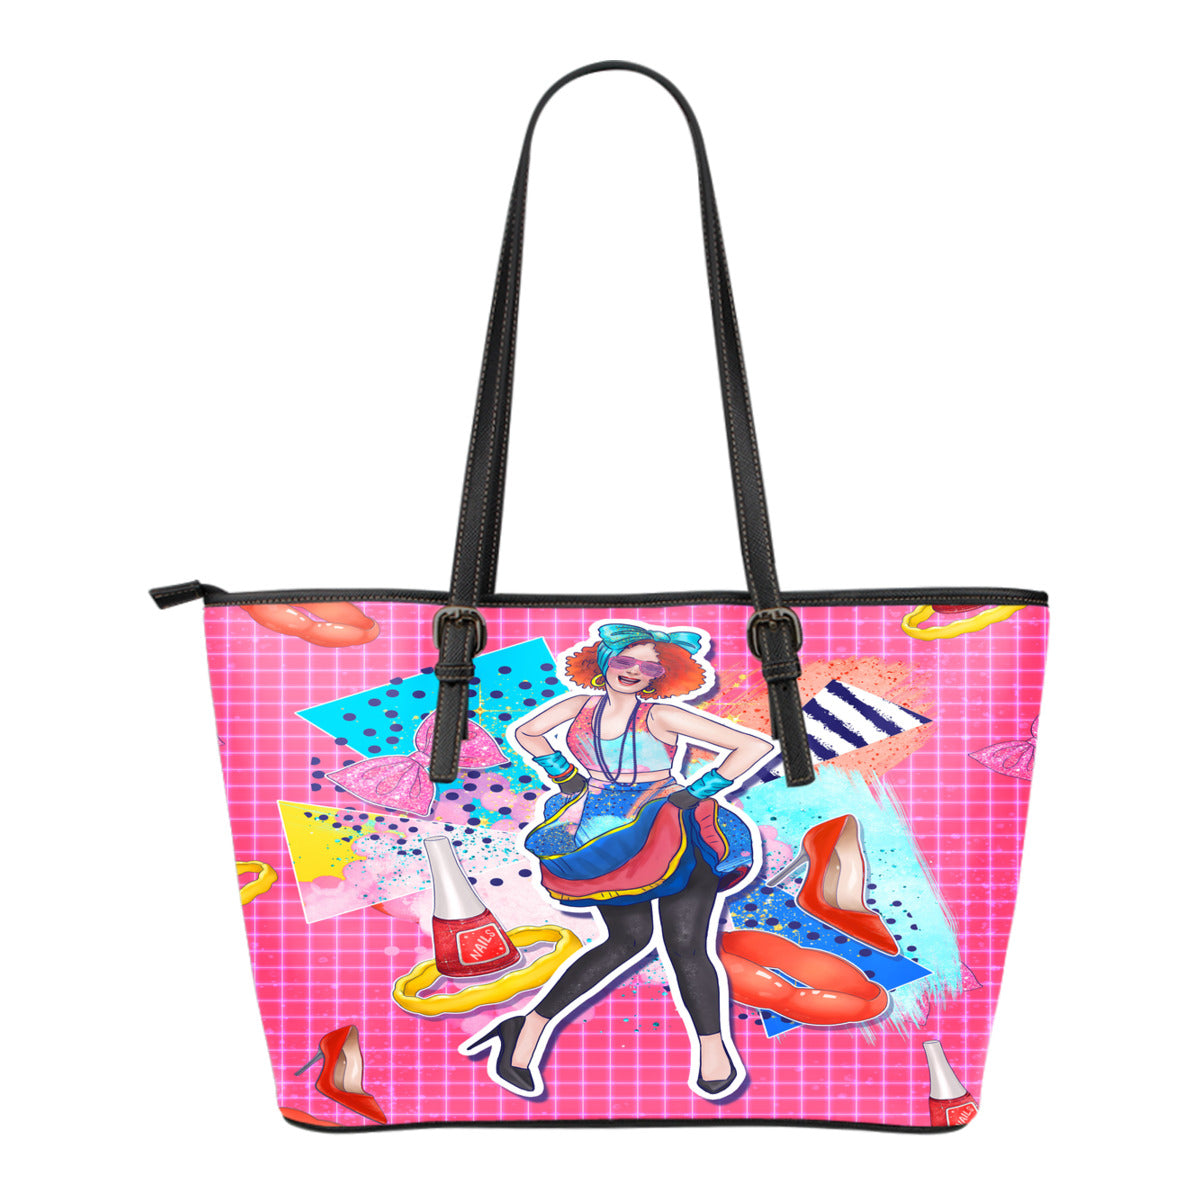 80s Fashion Themed Design C11 Women Small Leather Tote Bag